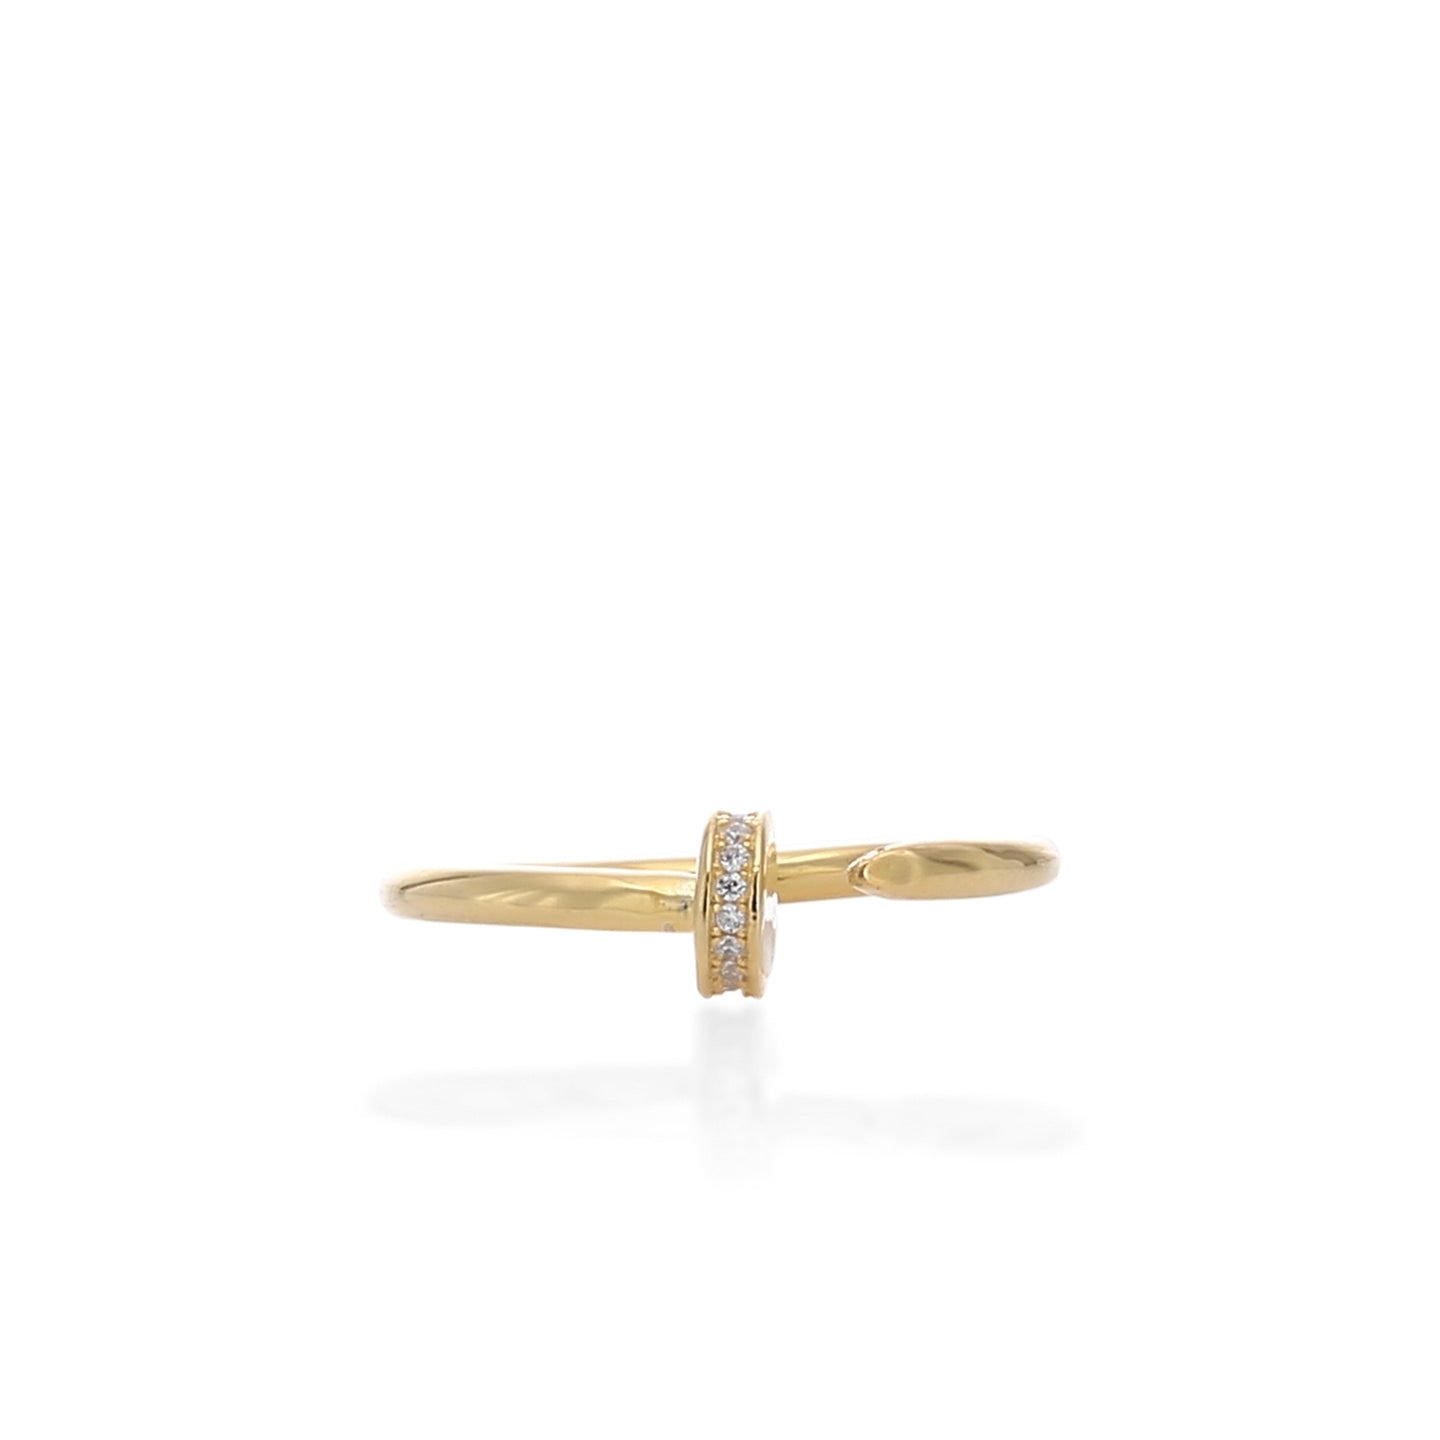 Fashionable Gap Midi Adjustable Ring - ARJWR1043GD - ARCADIO LIFESTYLE